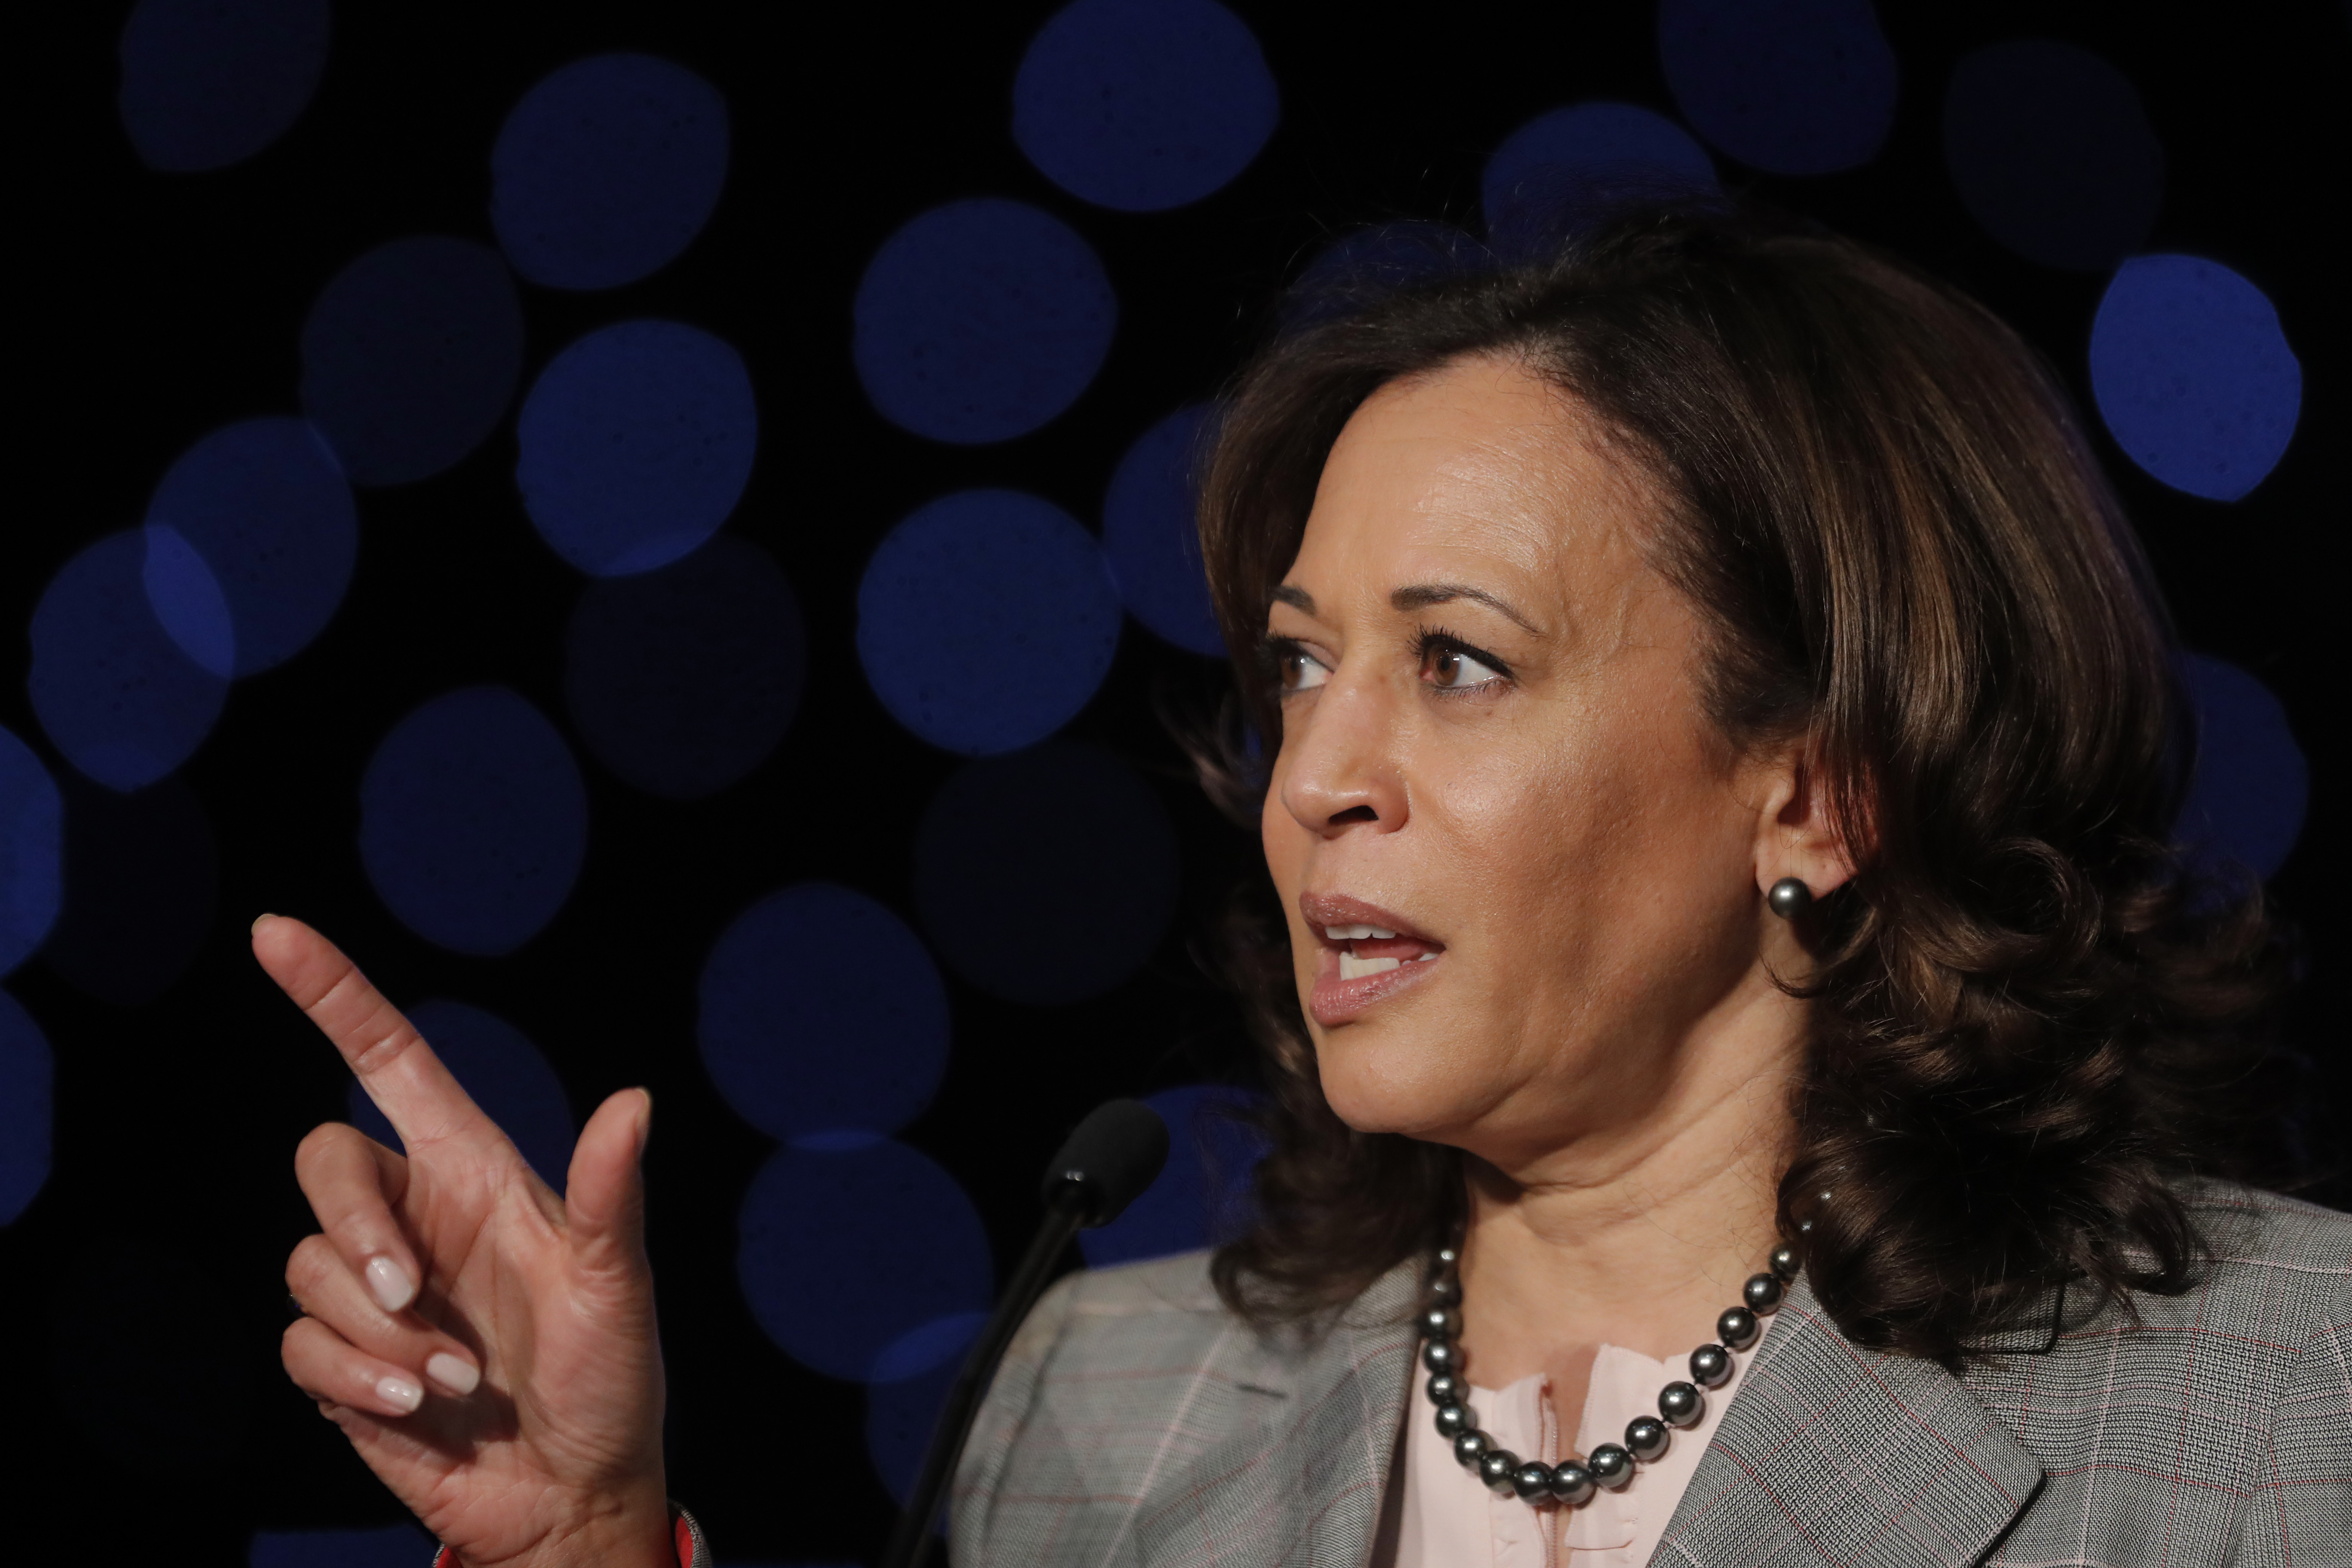 Kamala Harris says she would take executive action on gun violence in first 100 days